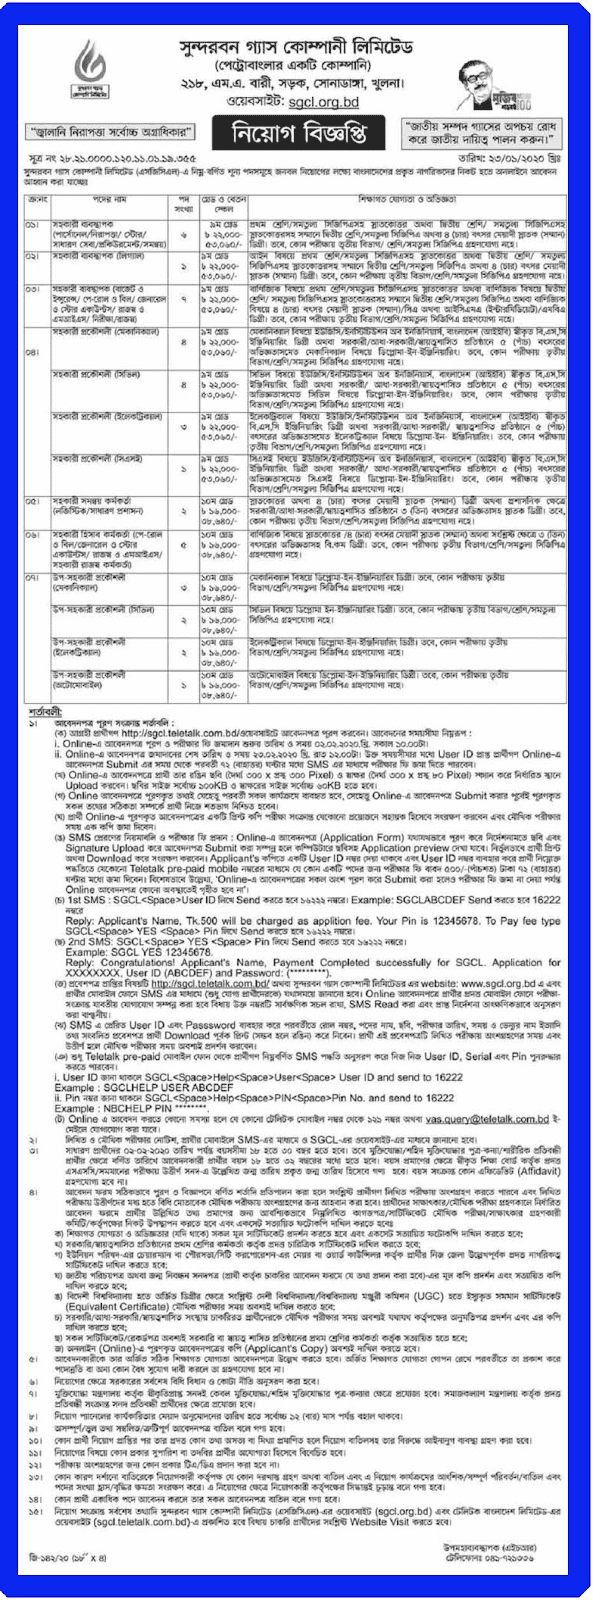 Sondorbon Gas Ltd Job Circular 2020